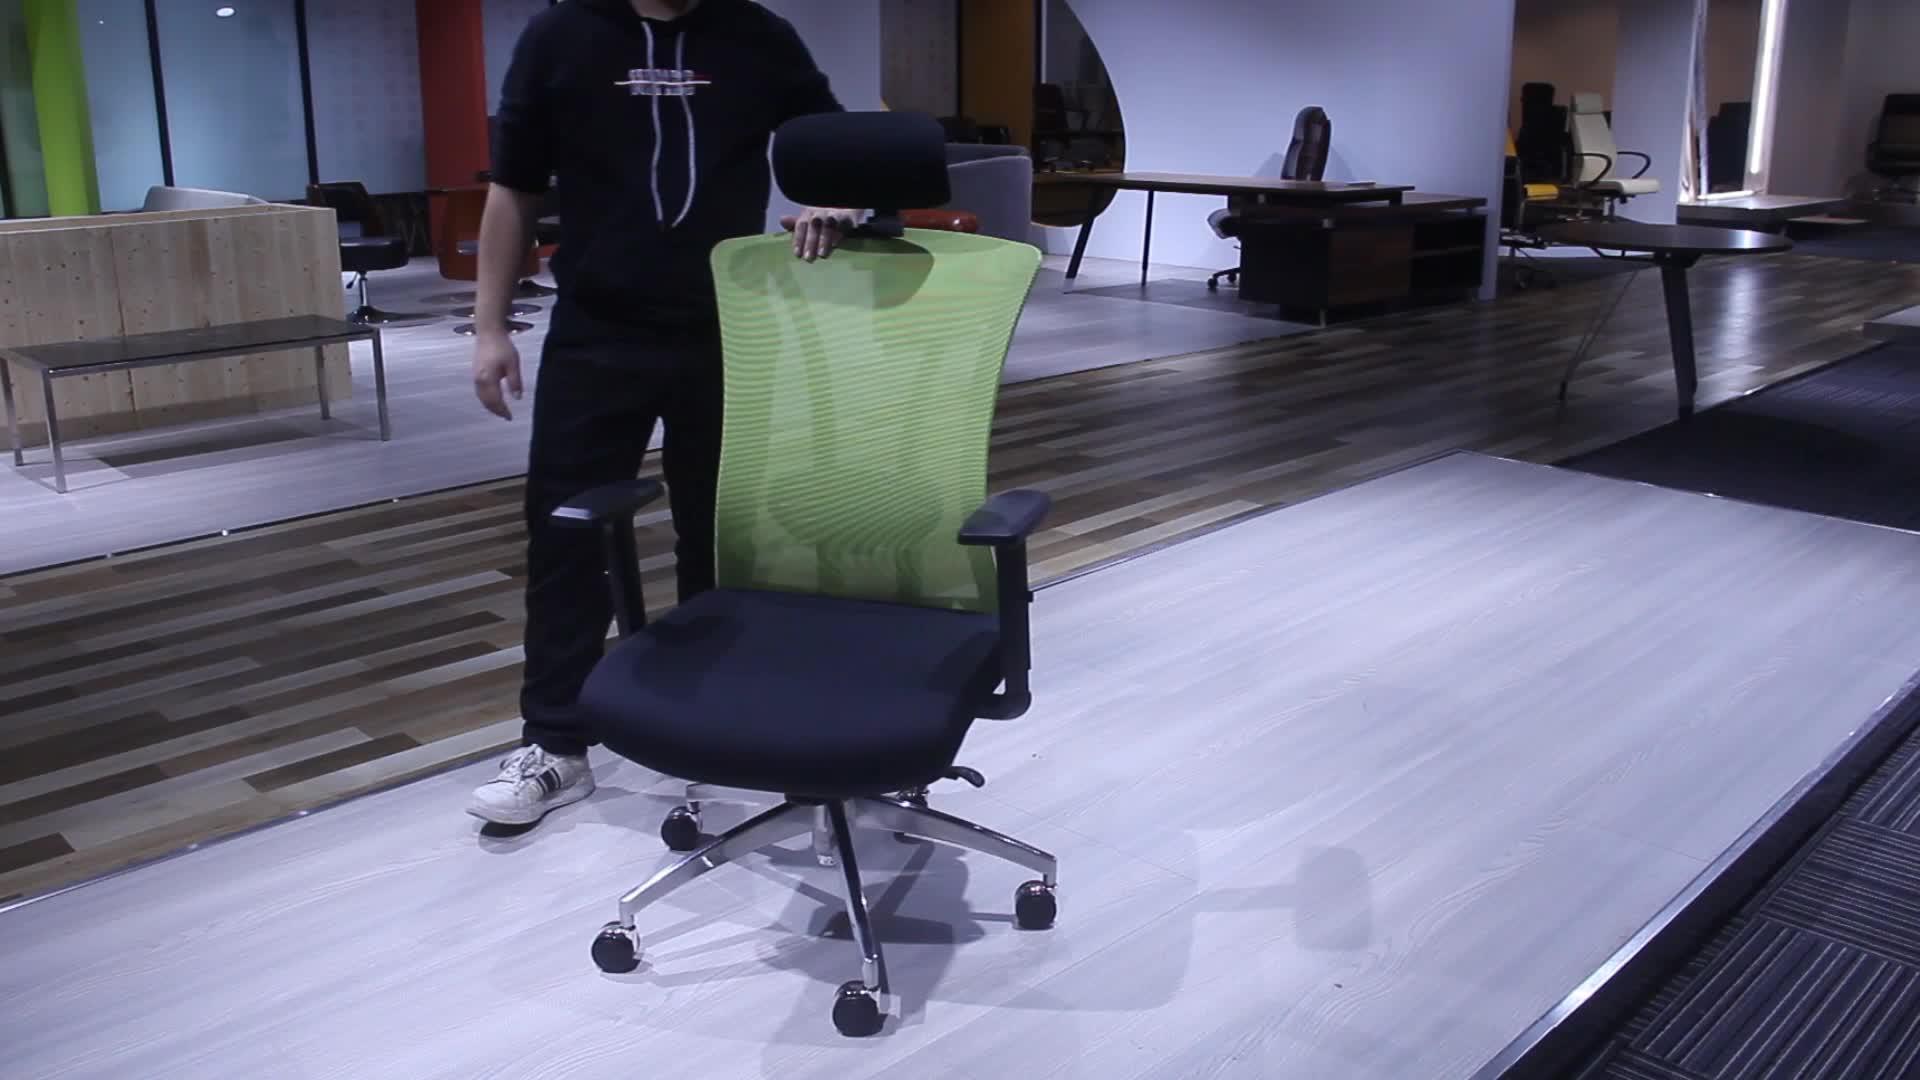 606-2B modern green conference room chairs+ergonomic office chair with neck support